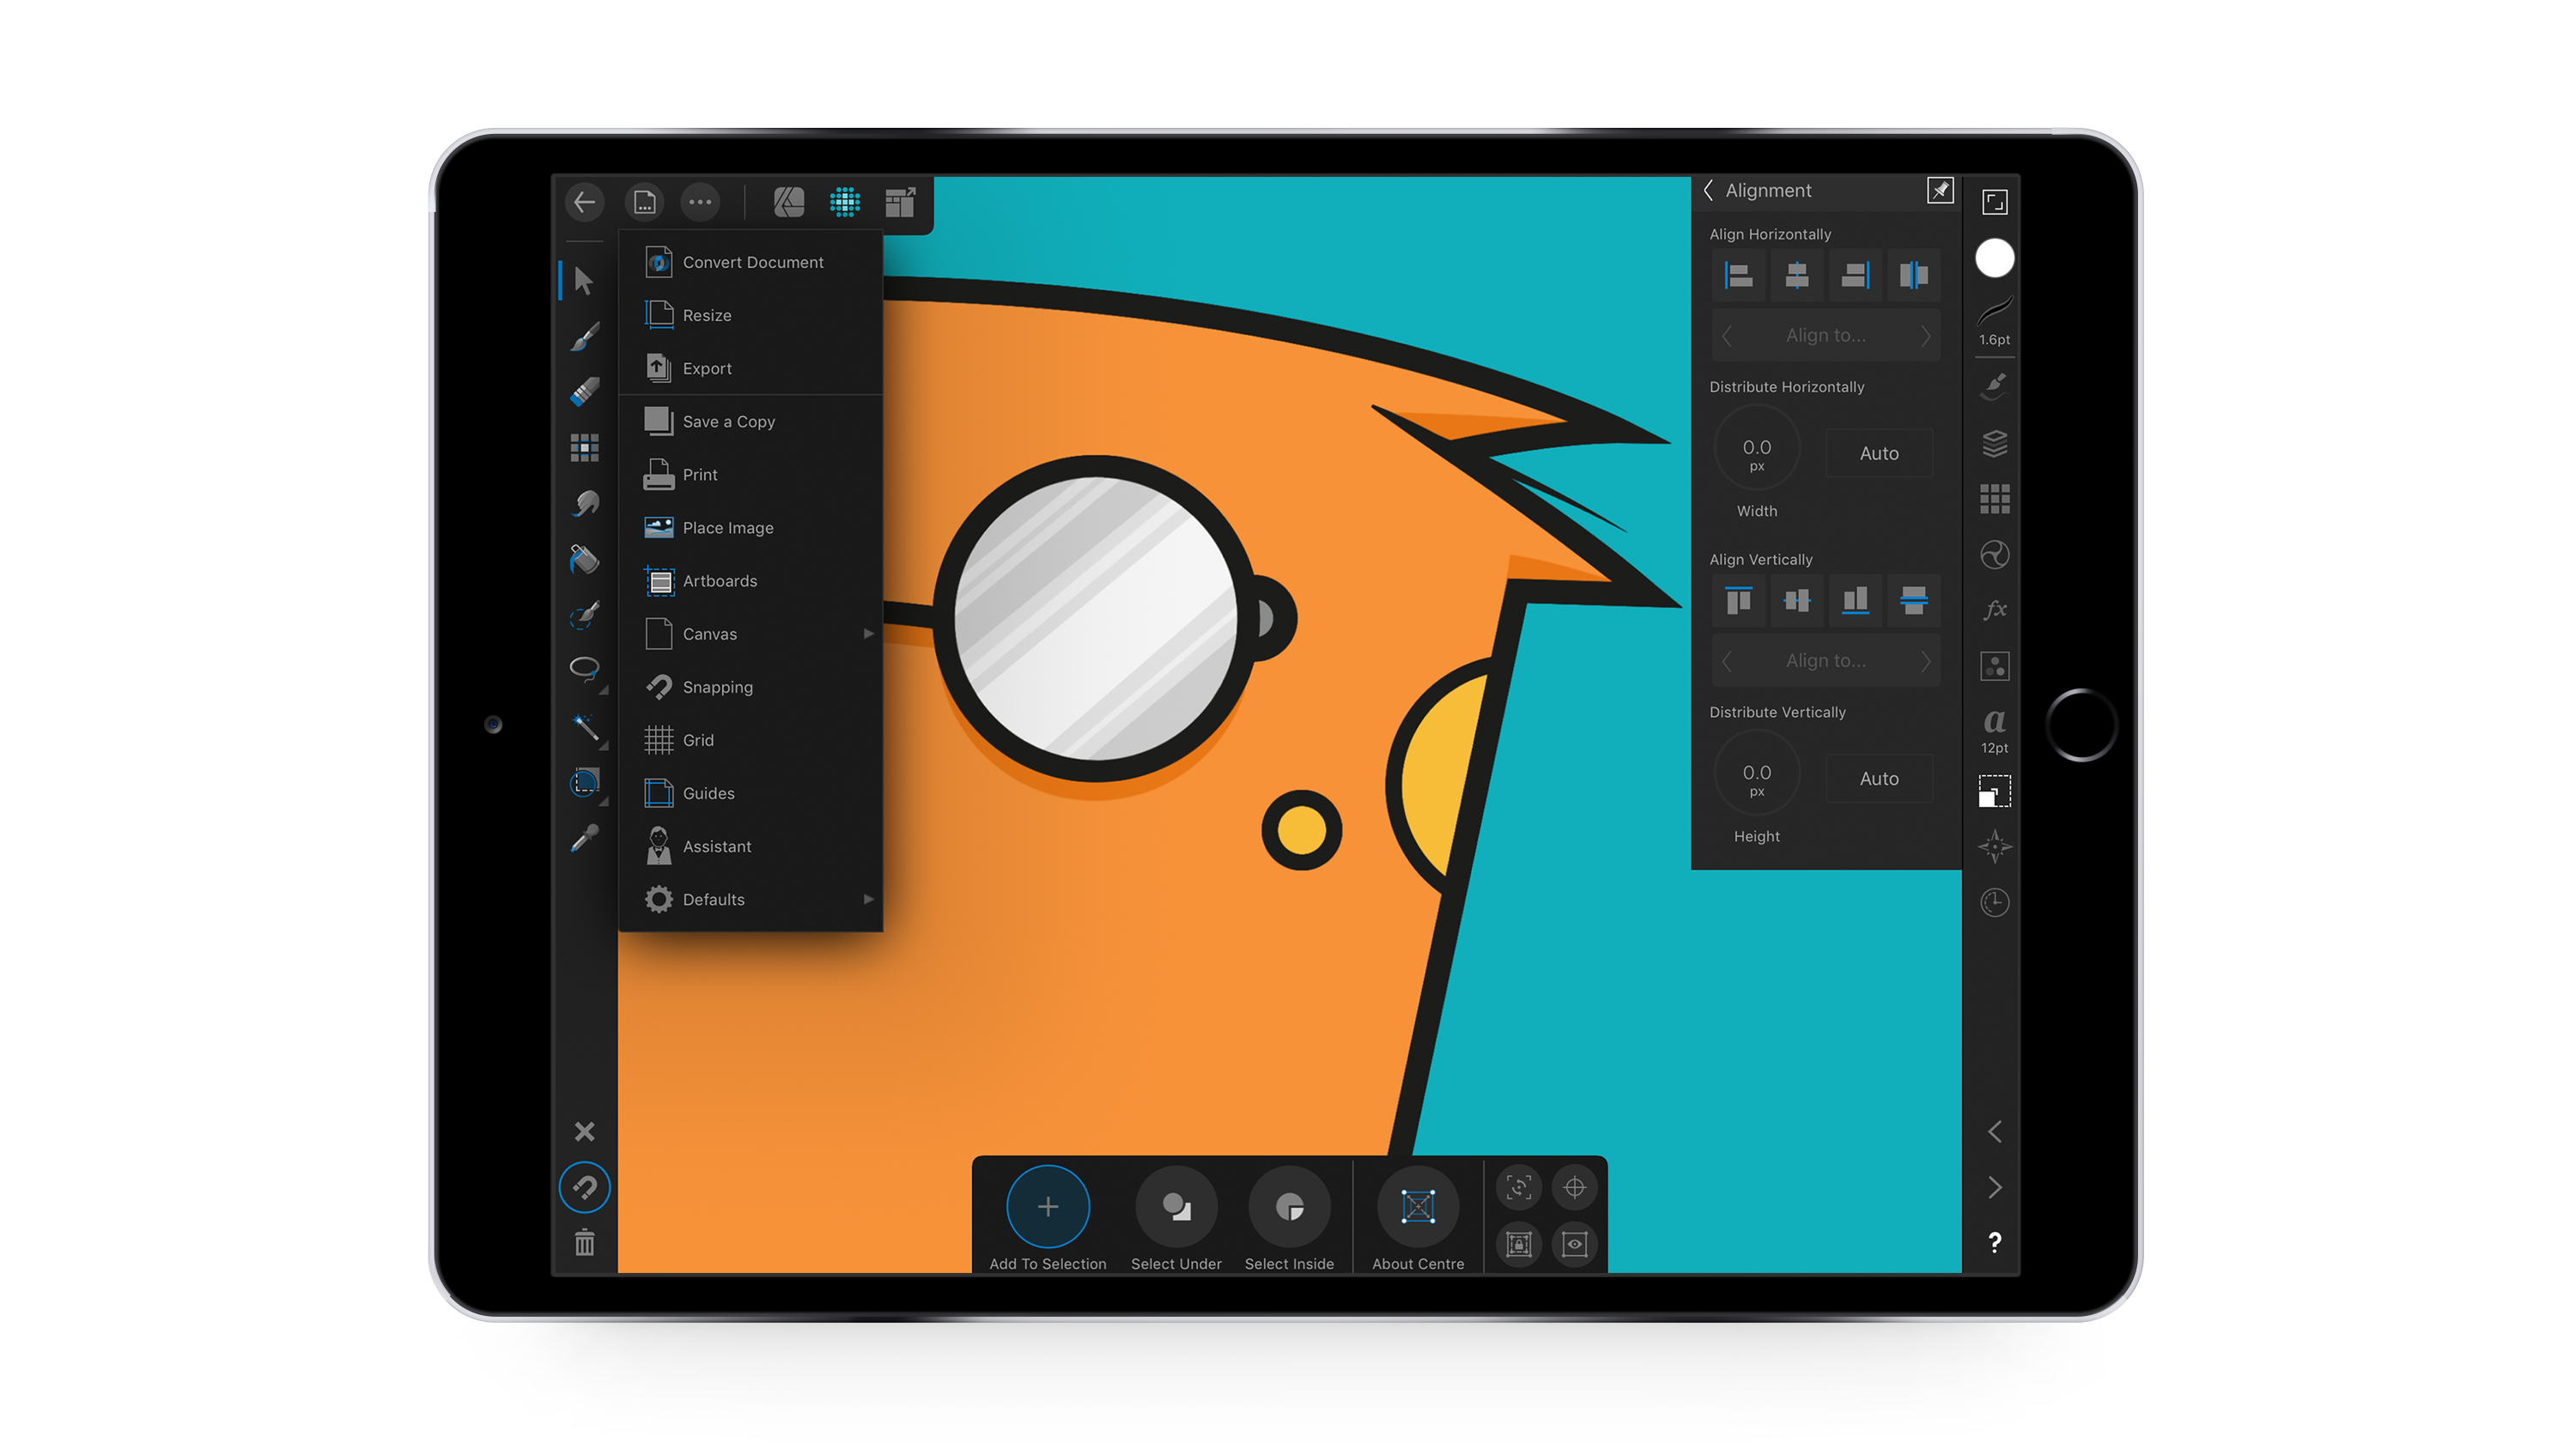 Screenshot of touch gestures within Affinity Designer for iPad